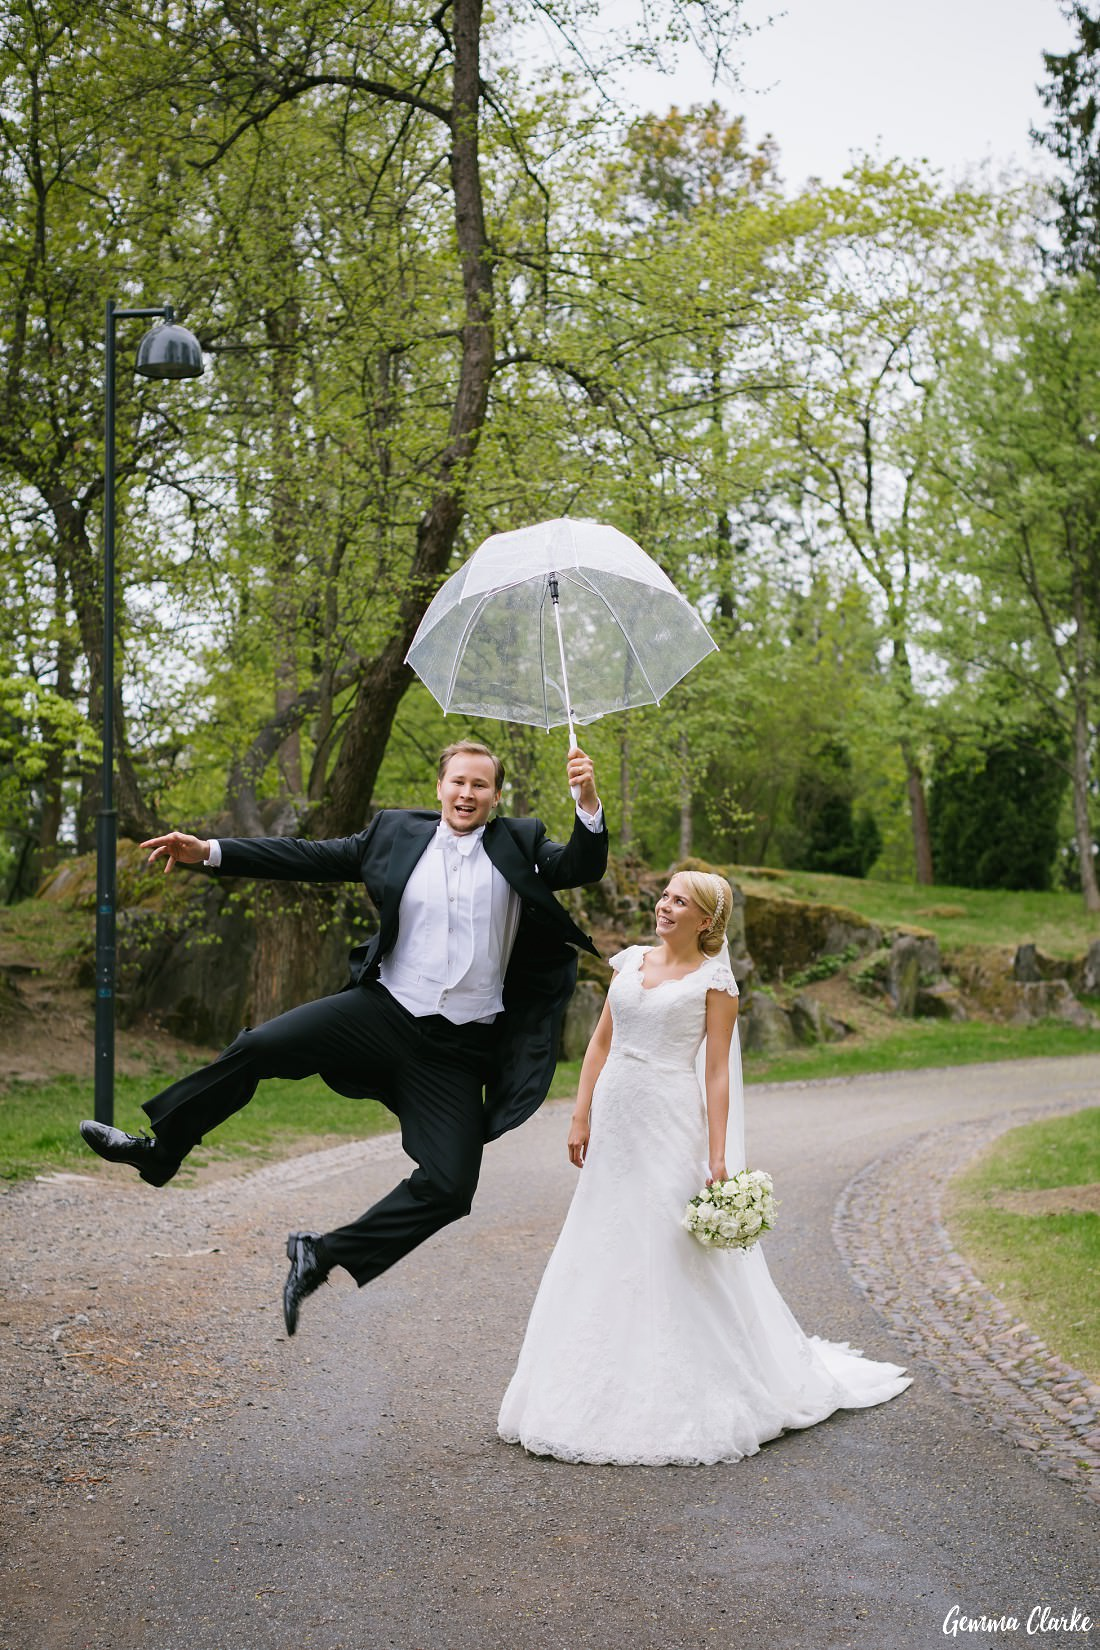 Groom jumps in the air with umbrella as bride watches at this Tampere Wedding